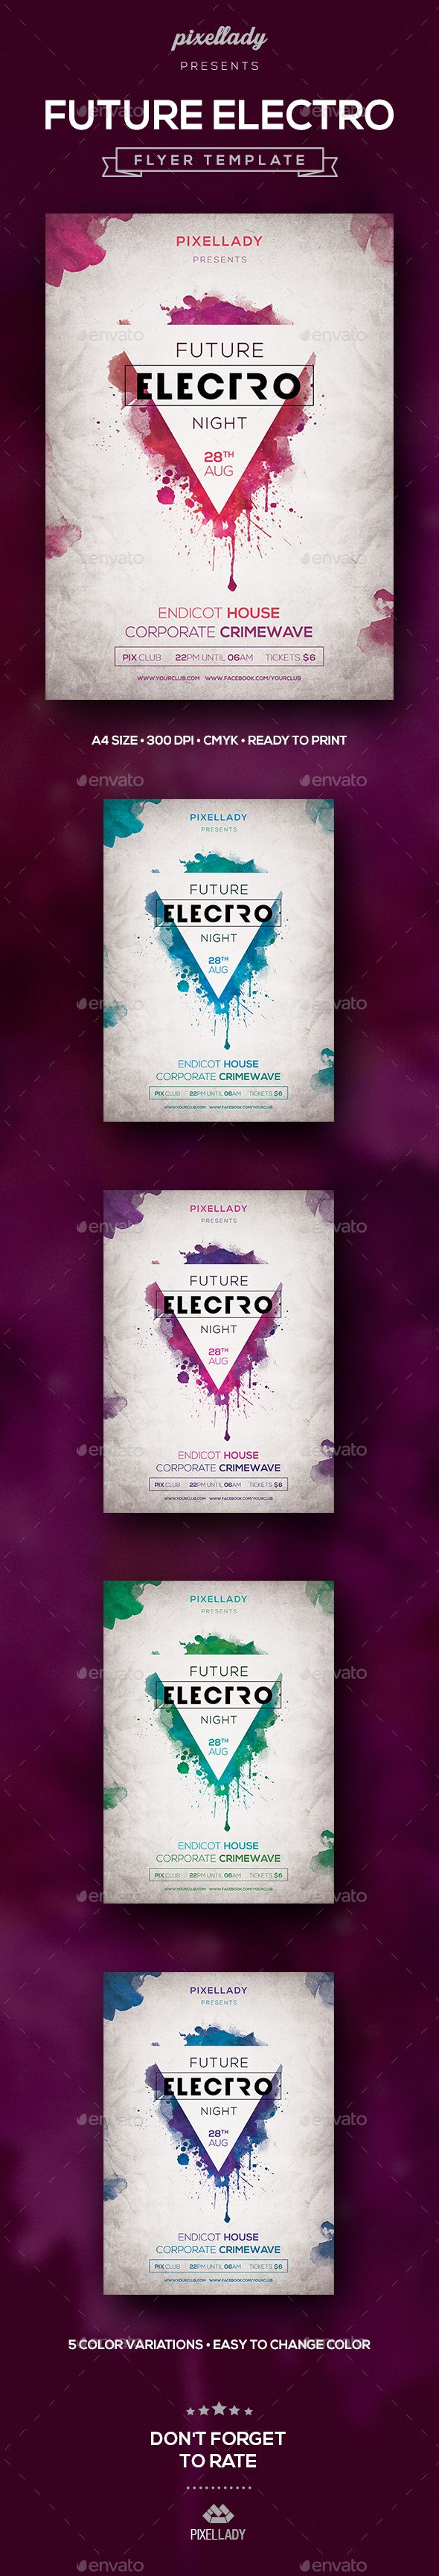 Future Electro Flyer  Electro Music And Flyer Template